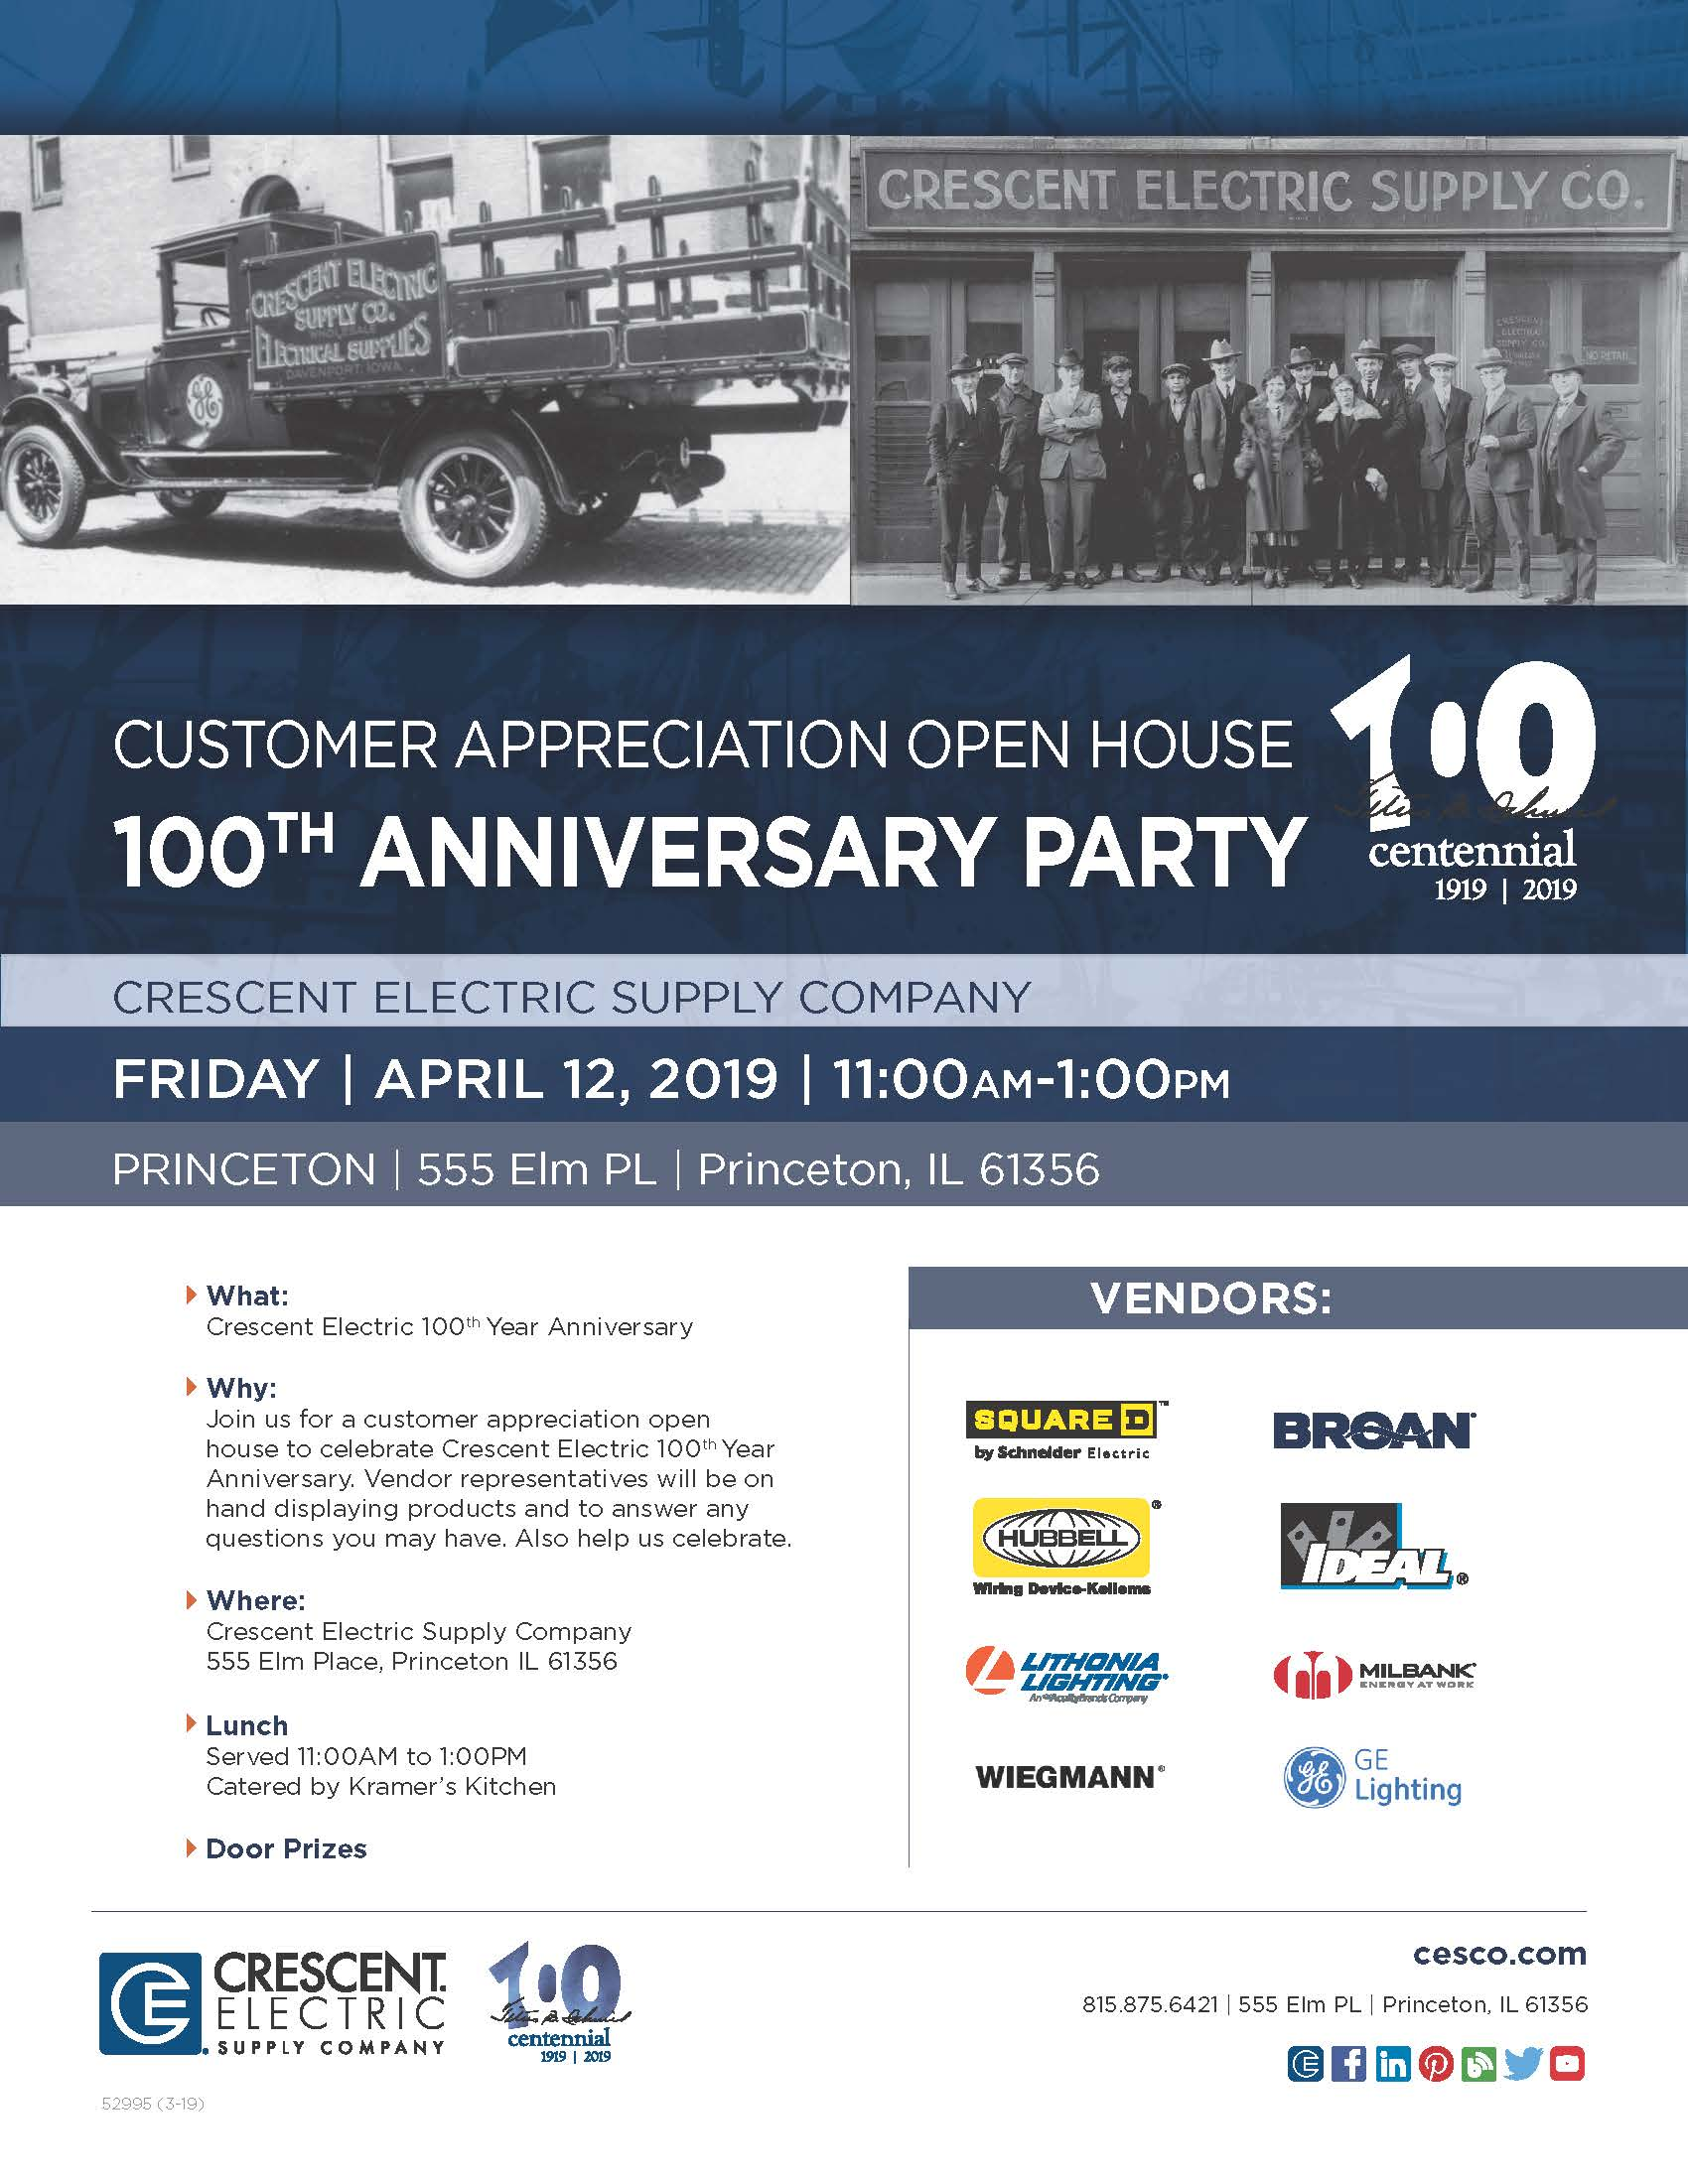 Crescent Electric Supply Company turns 100